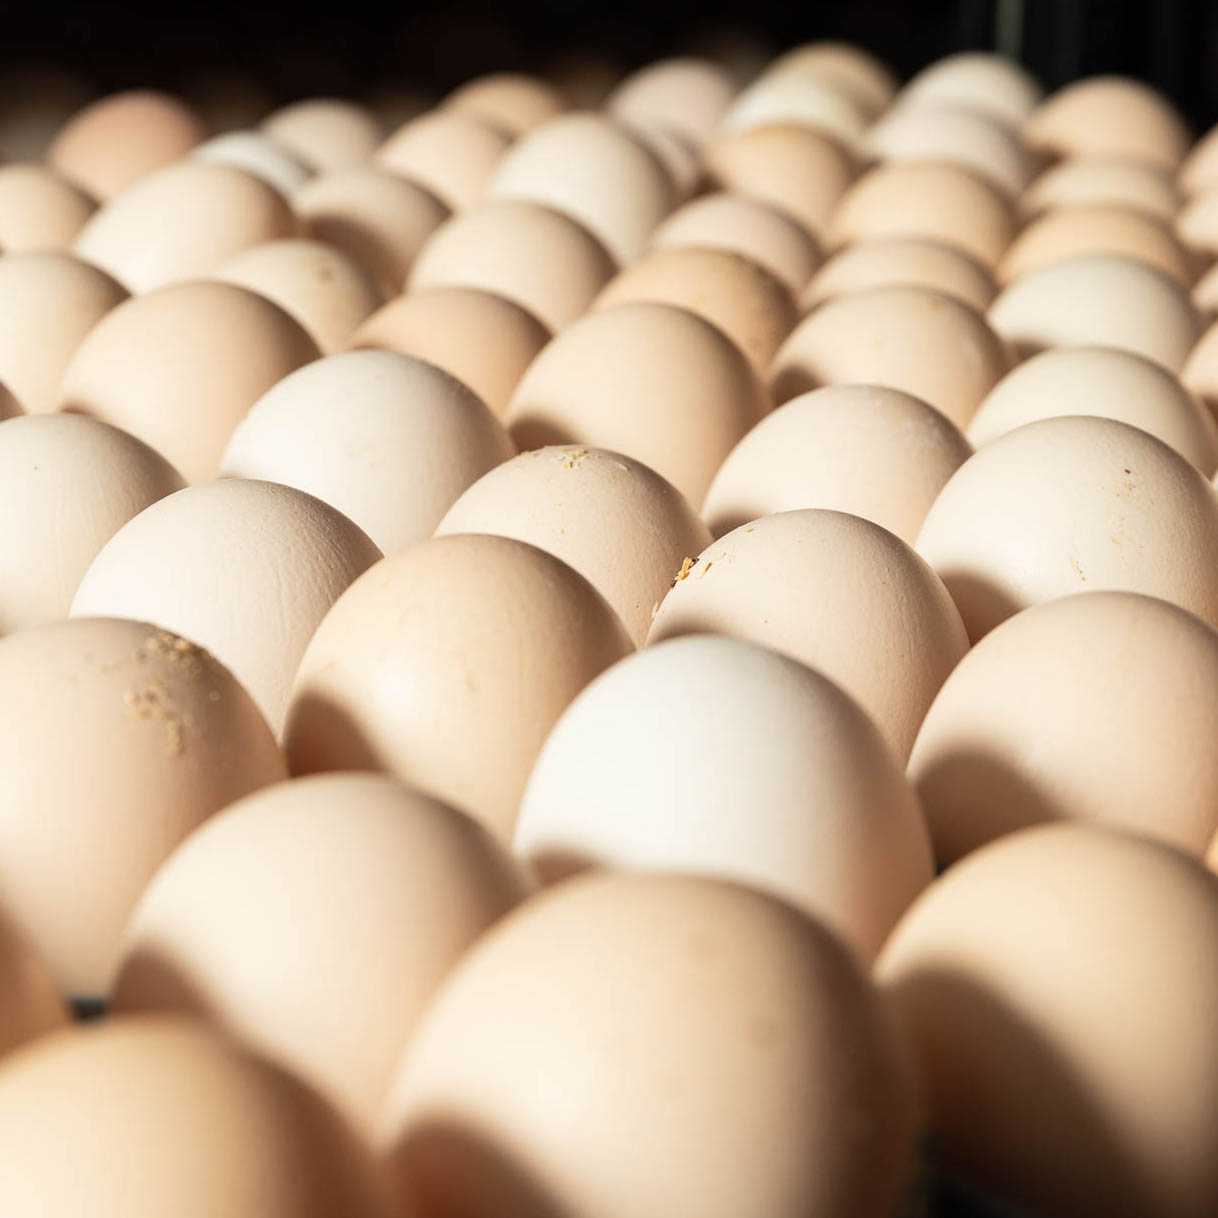 A tray filled with fertilised chicken eggs